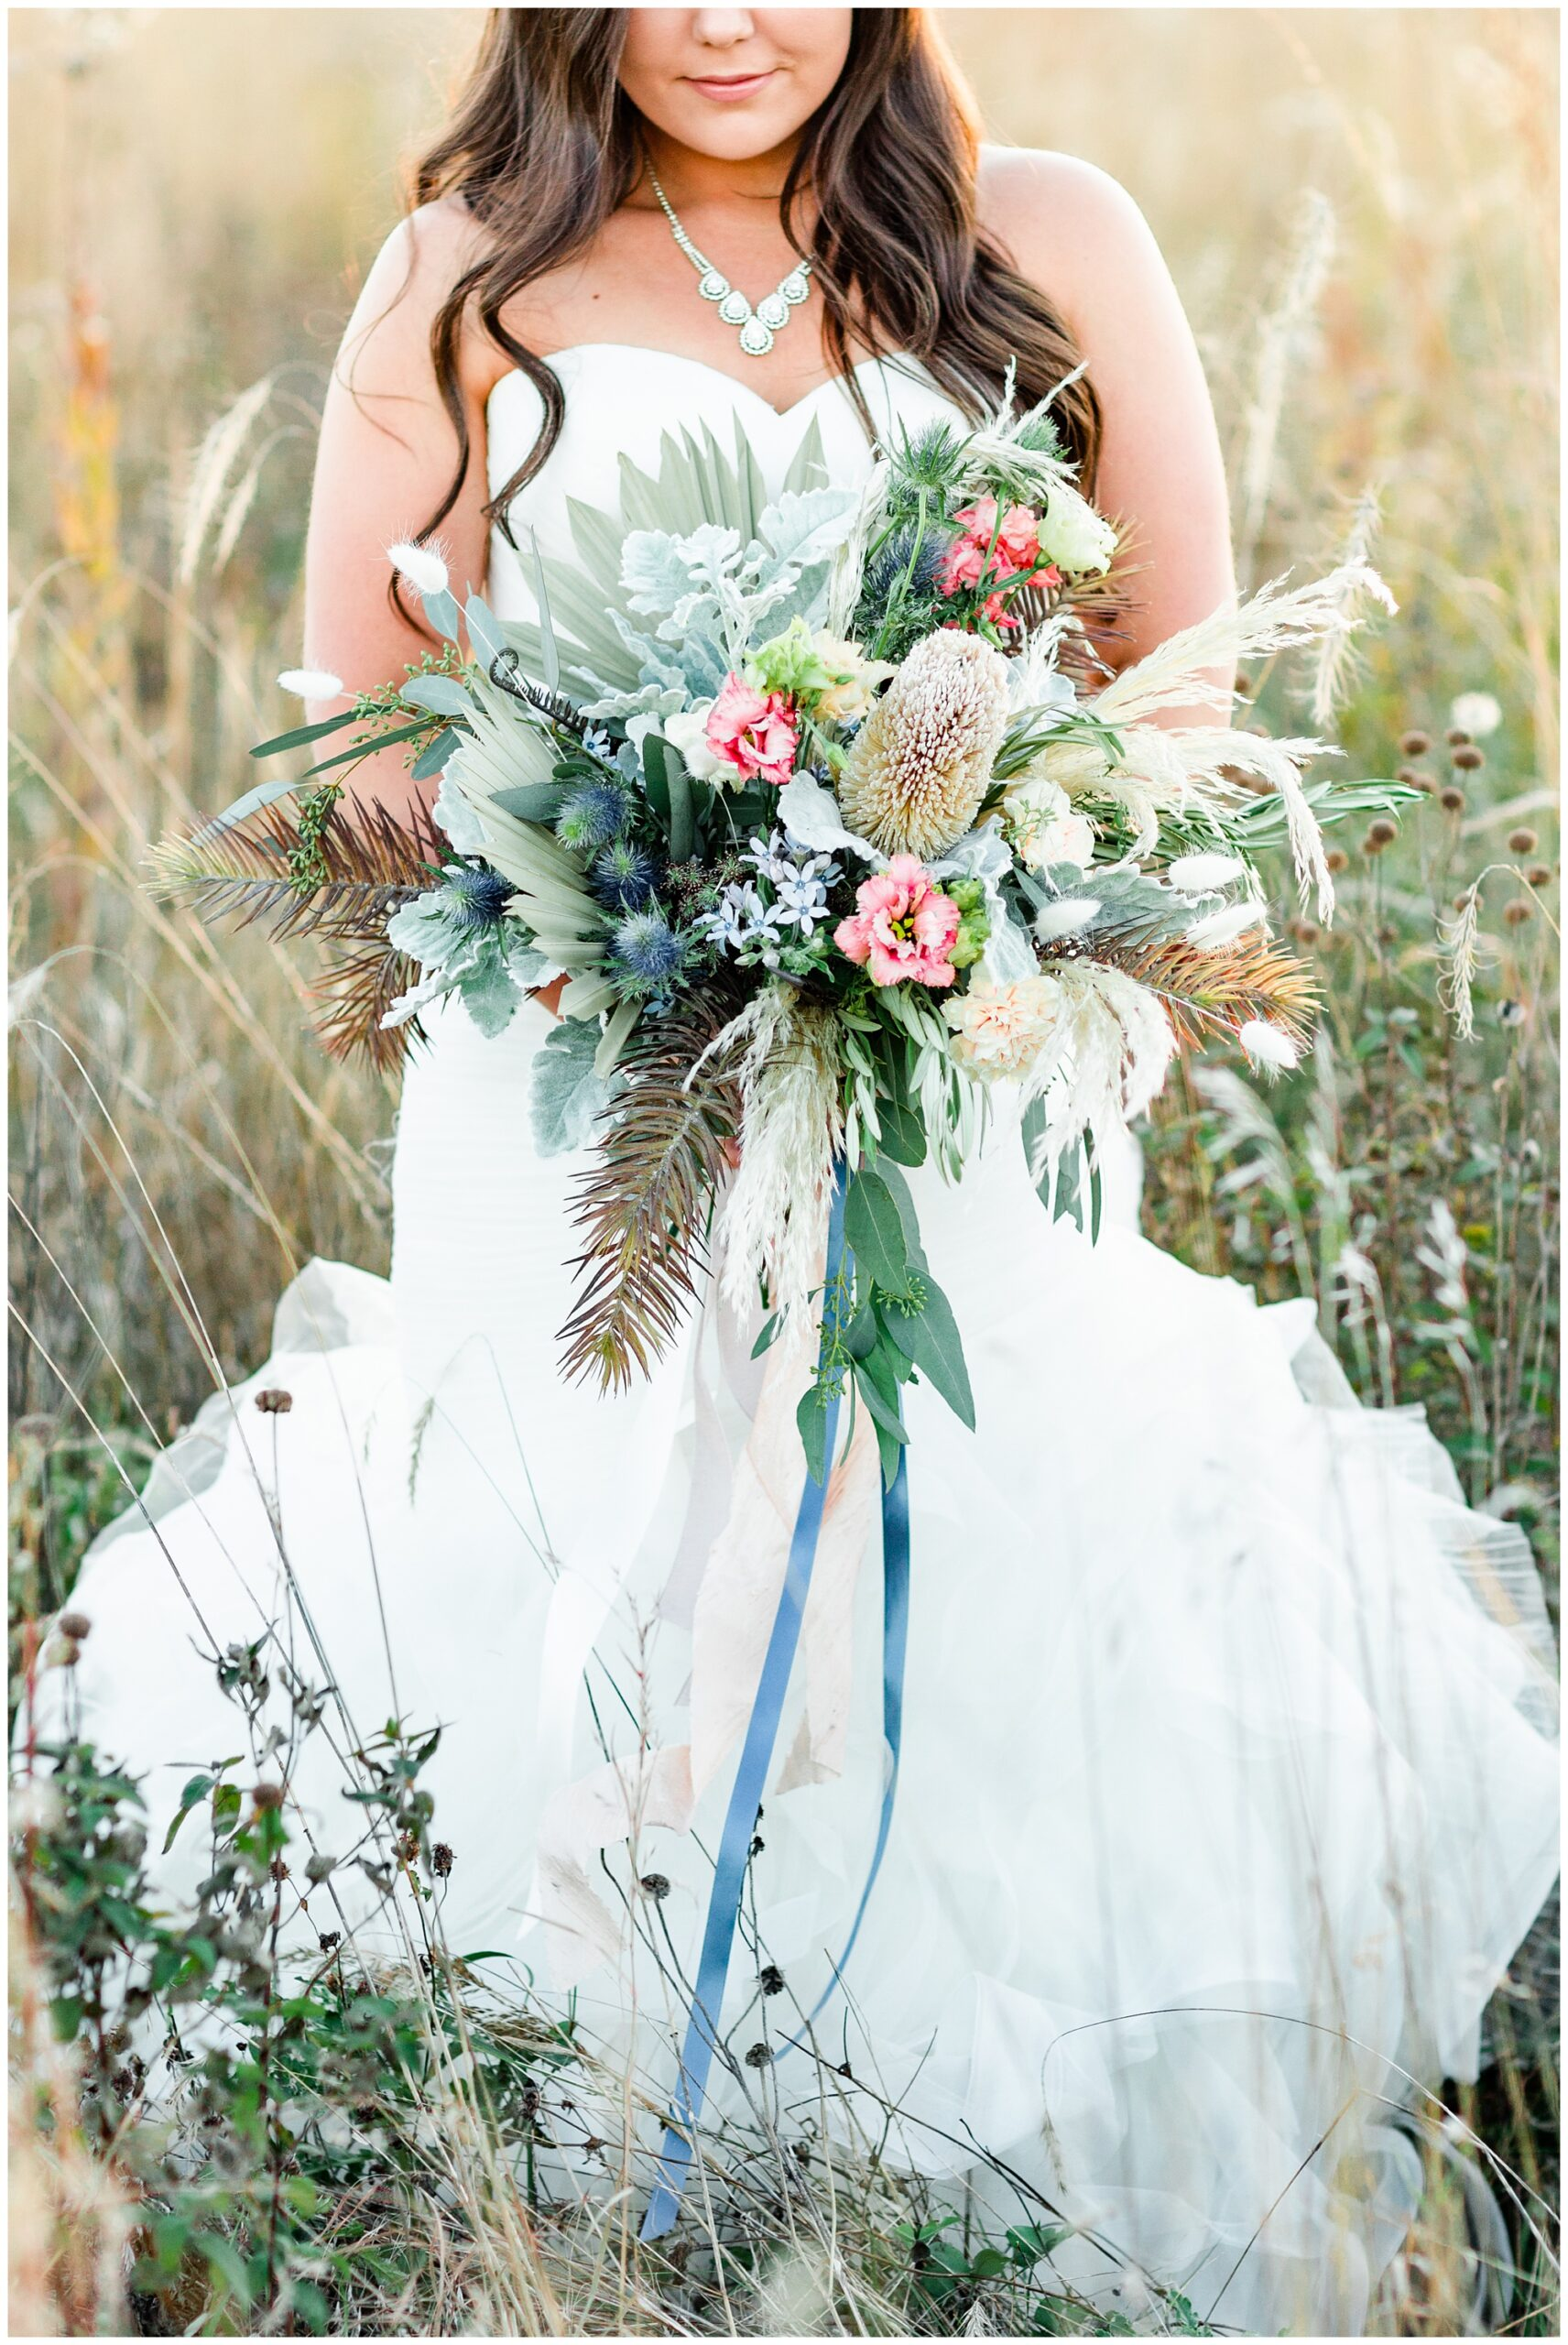 Trendy bridal boquet with a variety of florals with soft colors